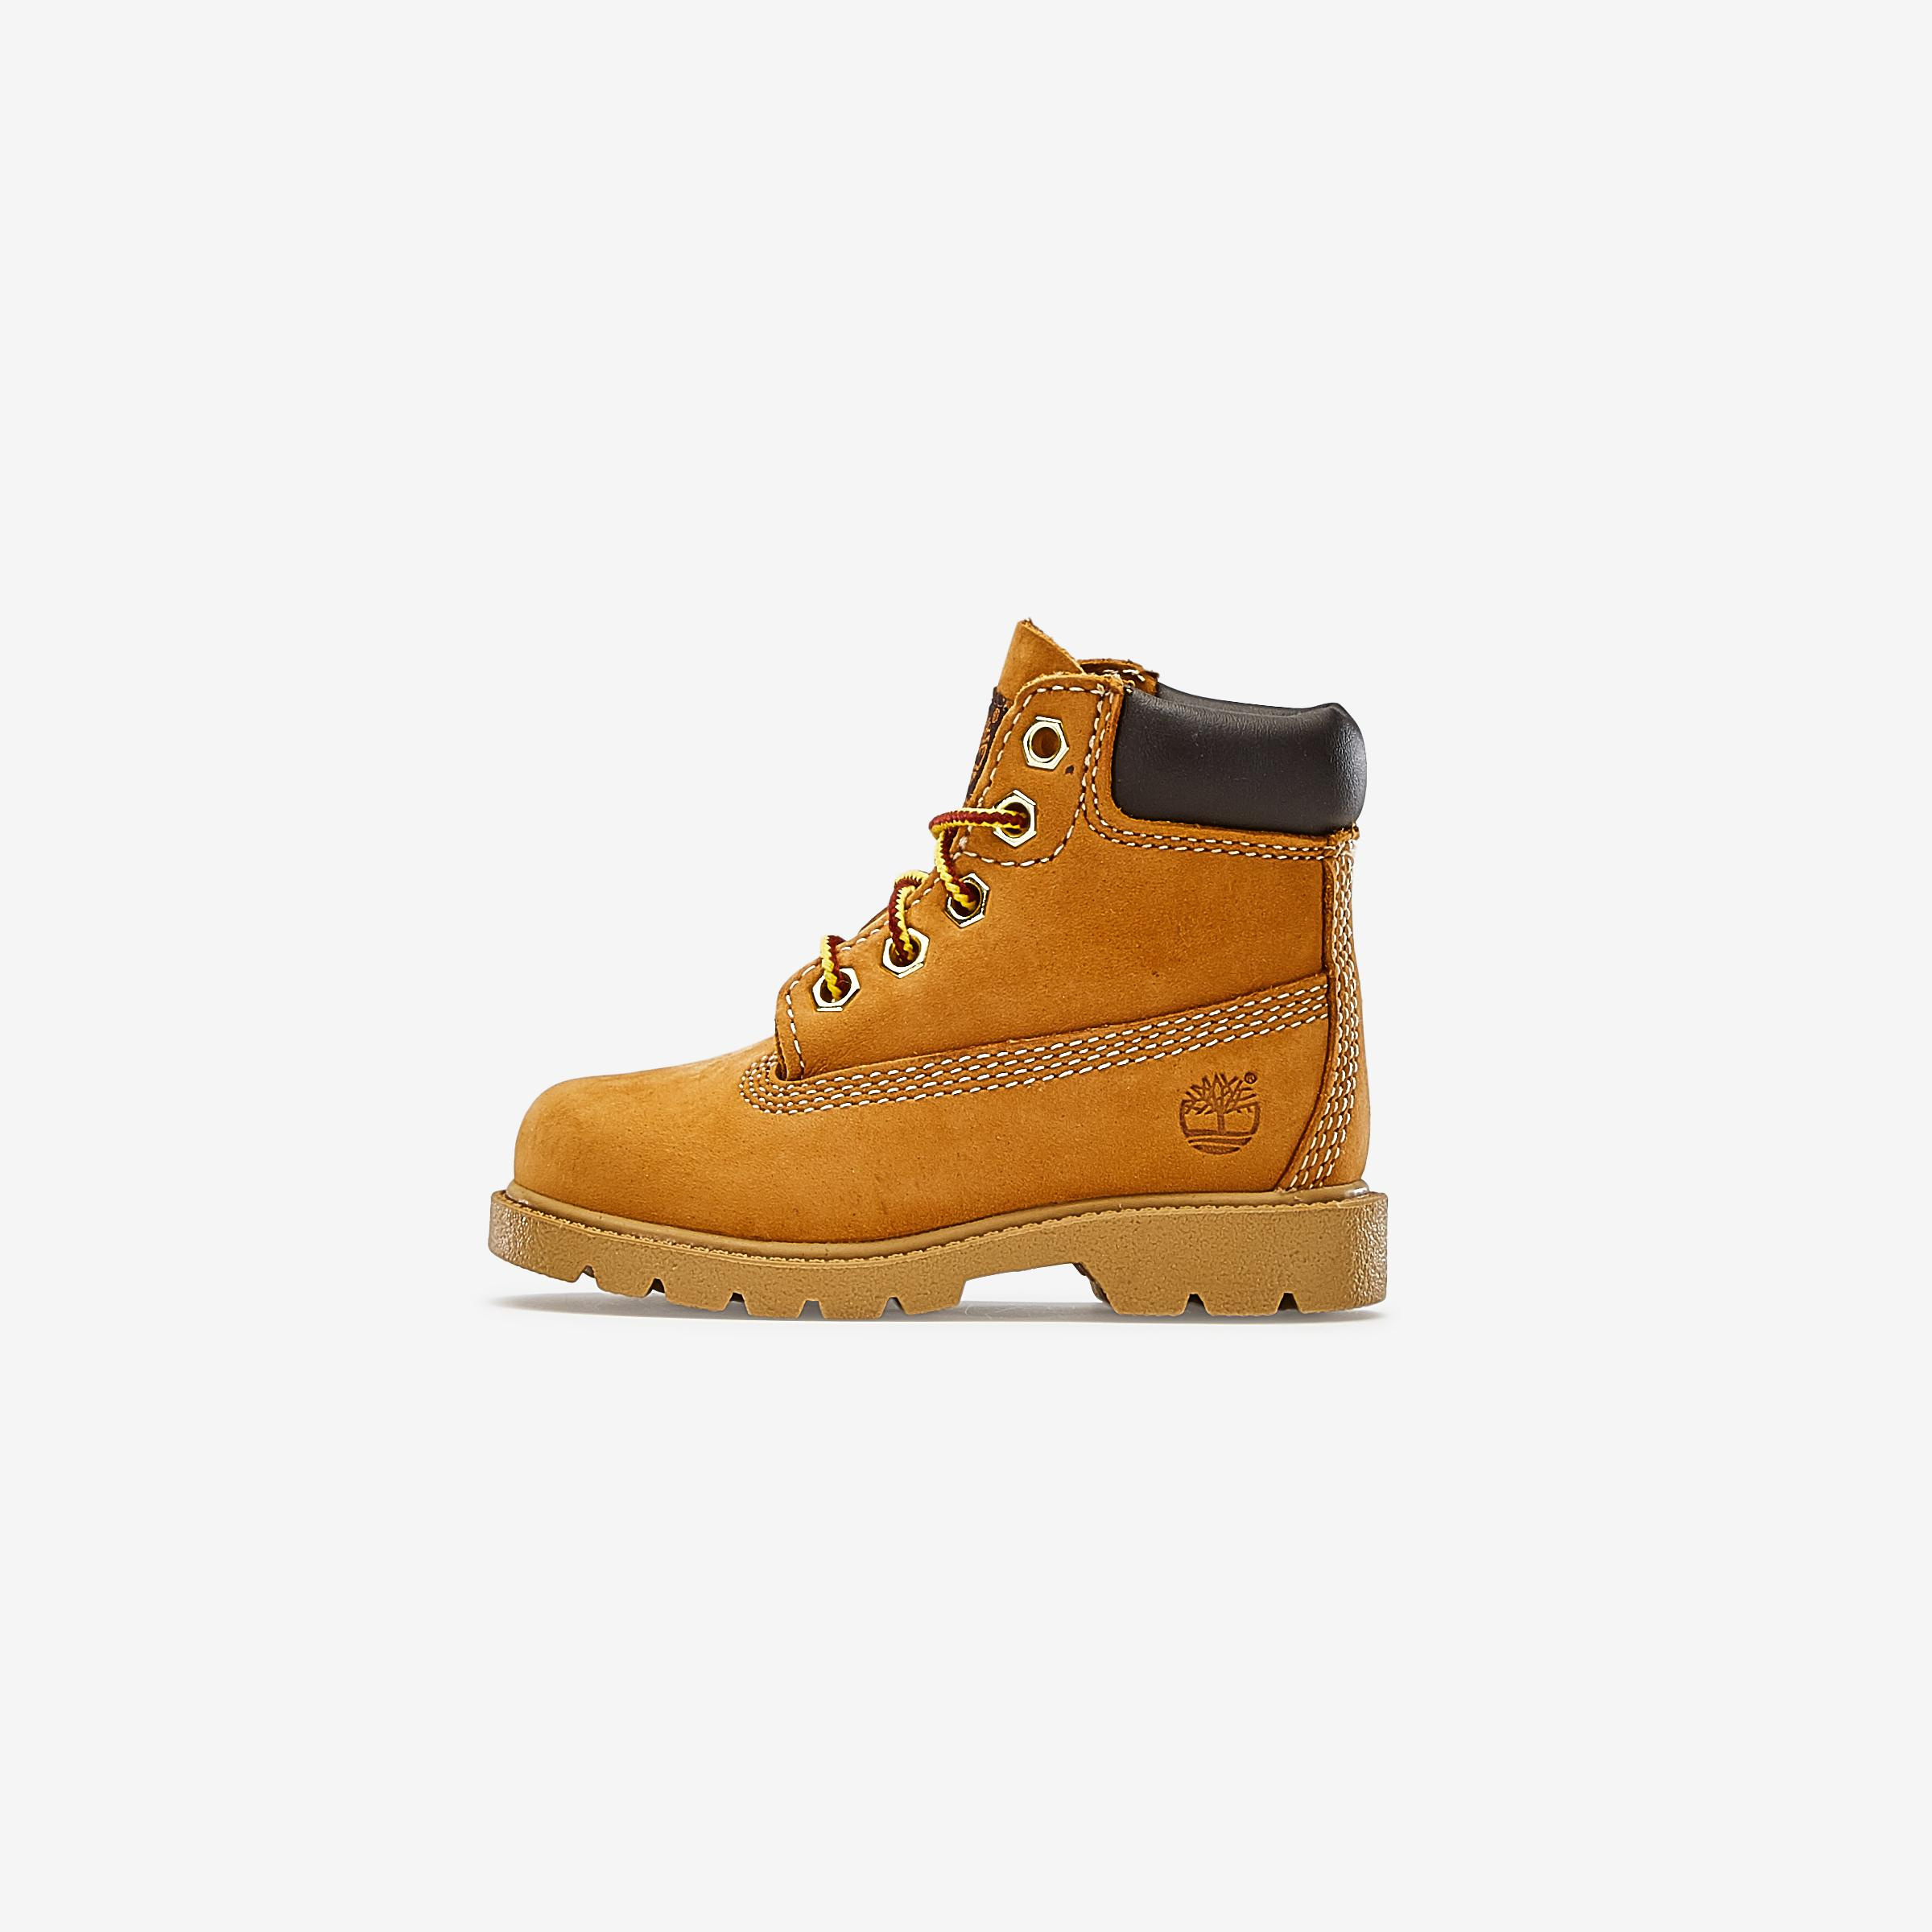 Boots60 6 00 Timberland Inch Toddler Waterproof Classic nO0wkP8